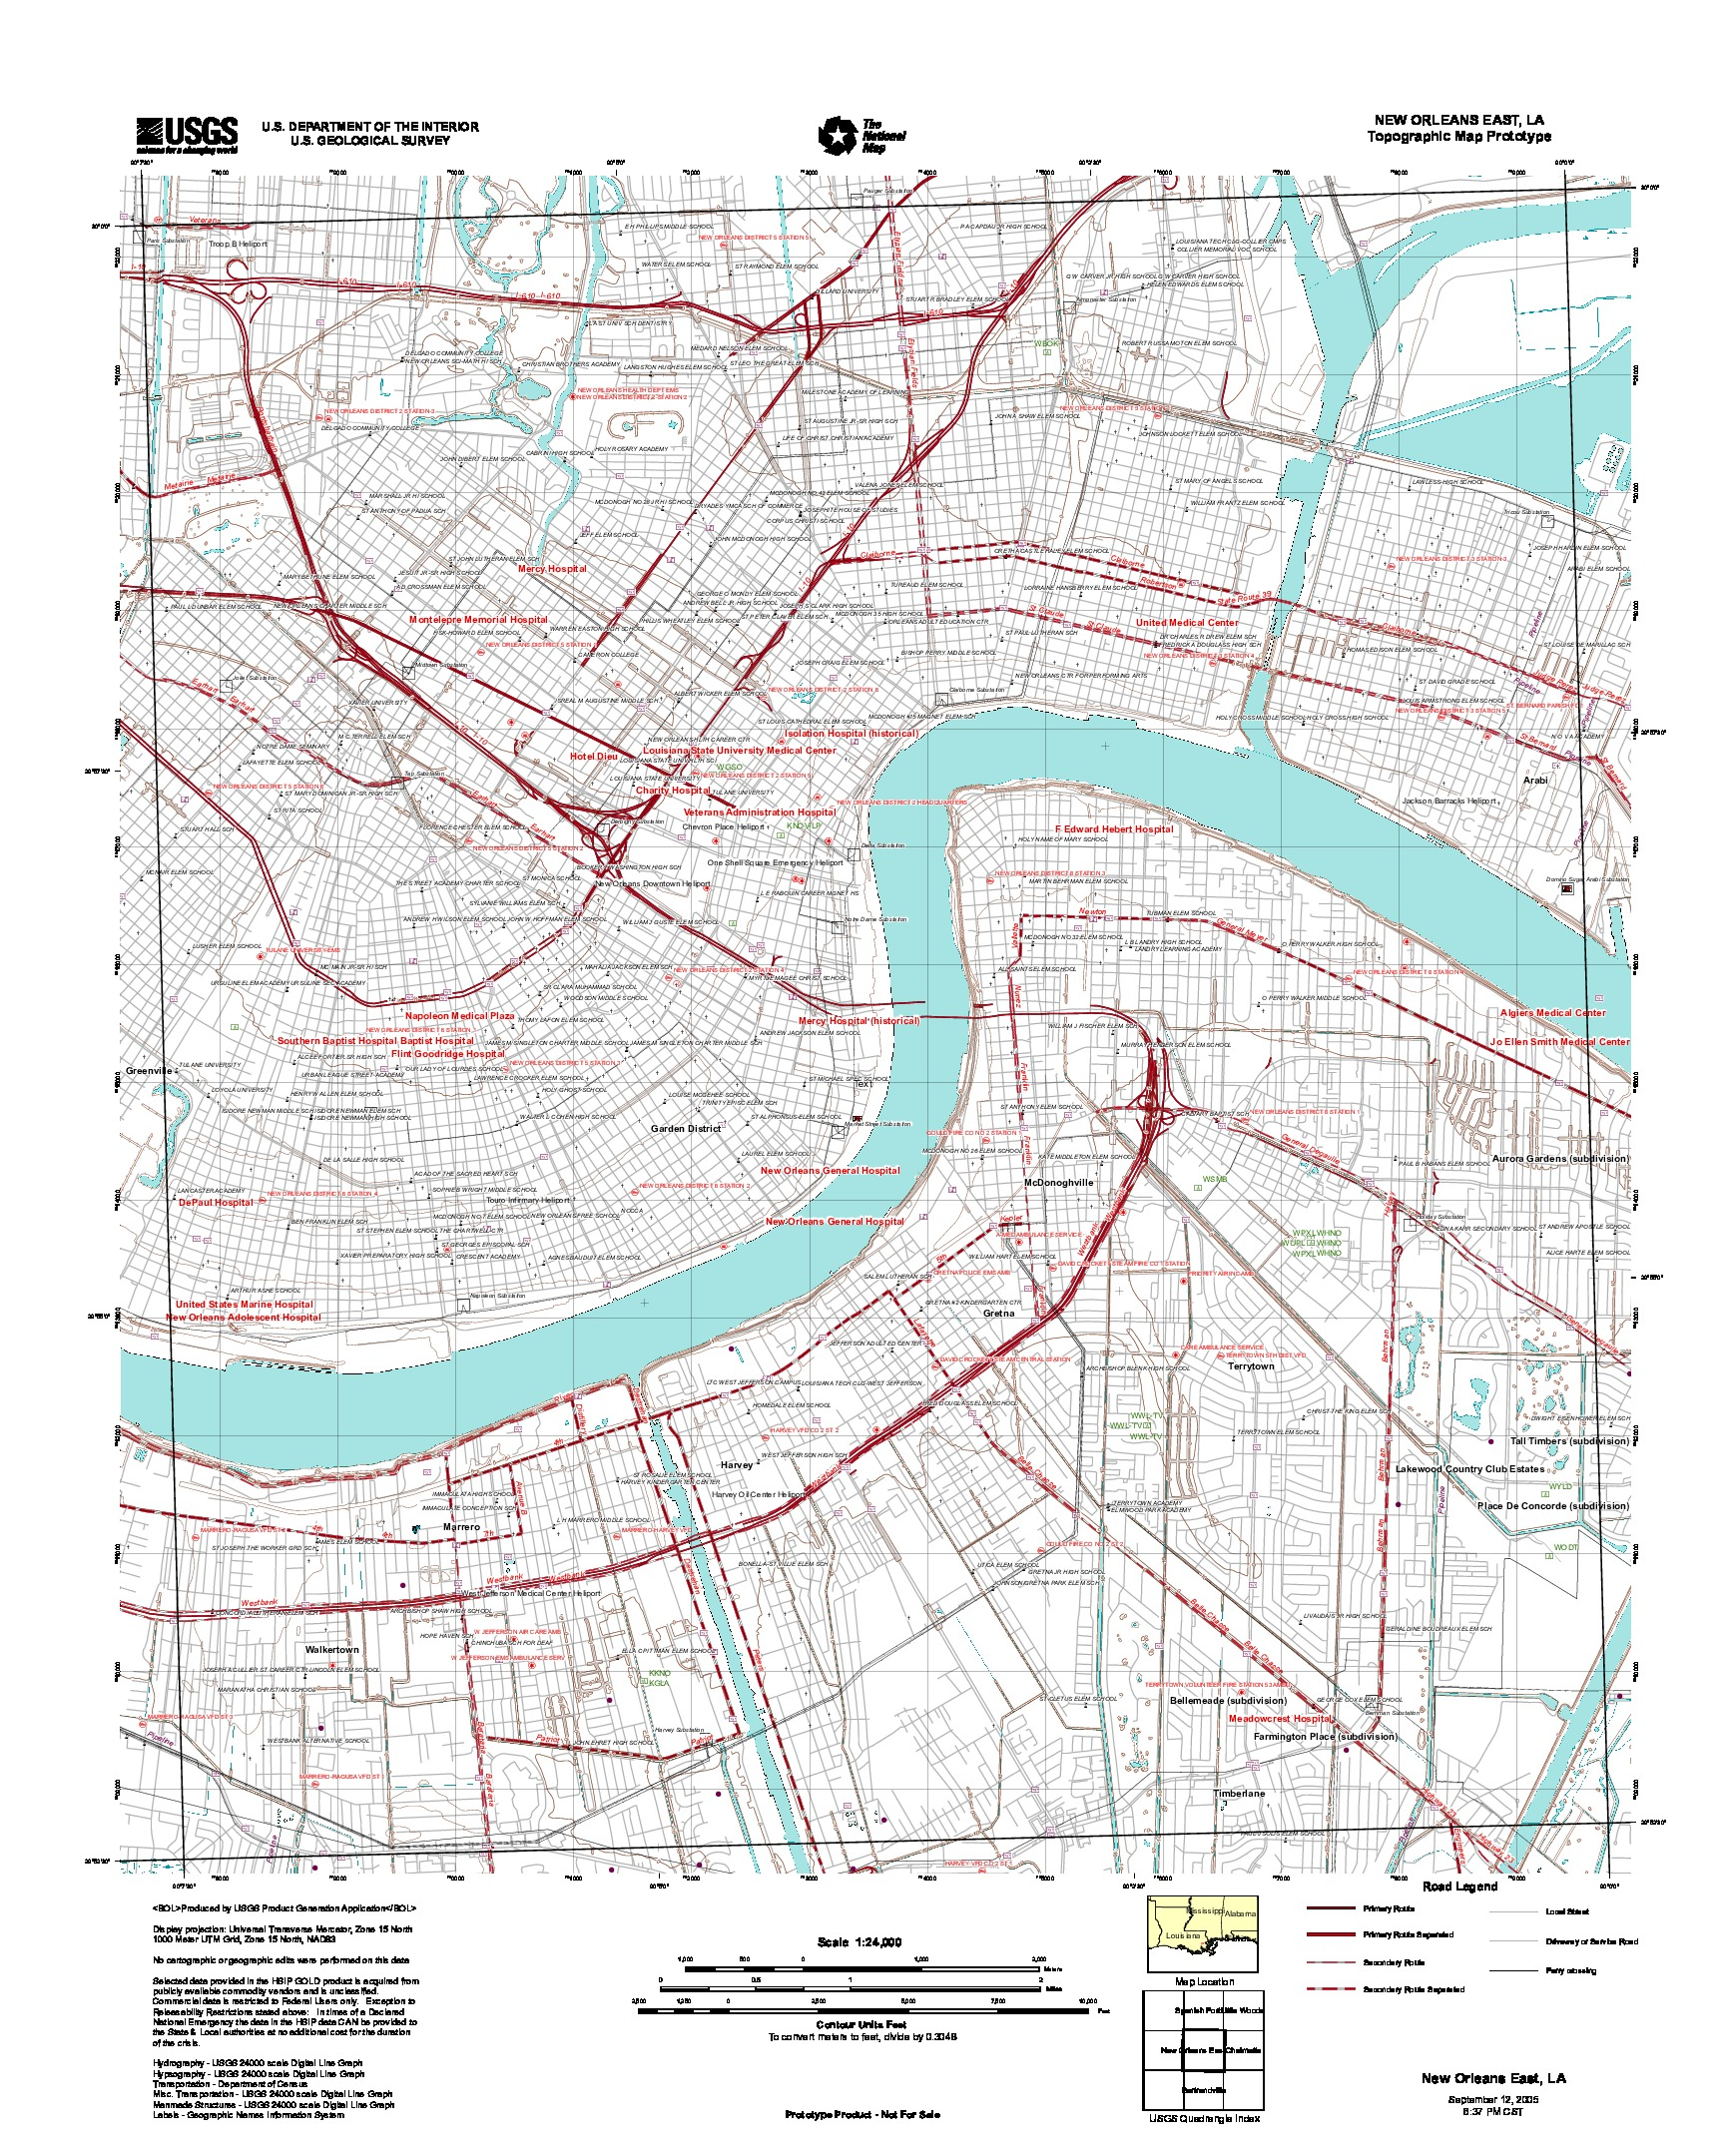 New Orleans East, Topographic Map Prototype, Louisiana, United States, September 12, 2005